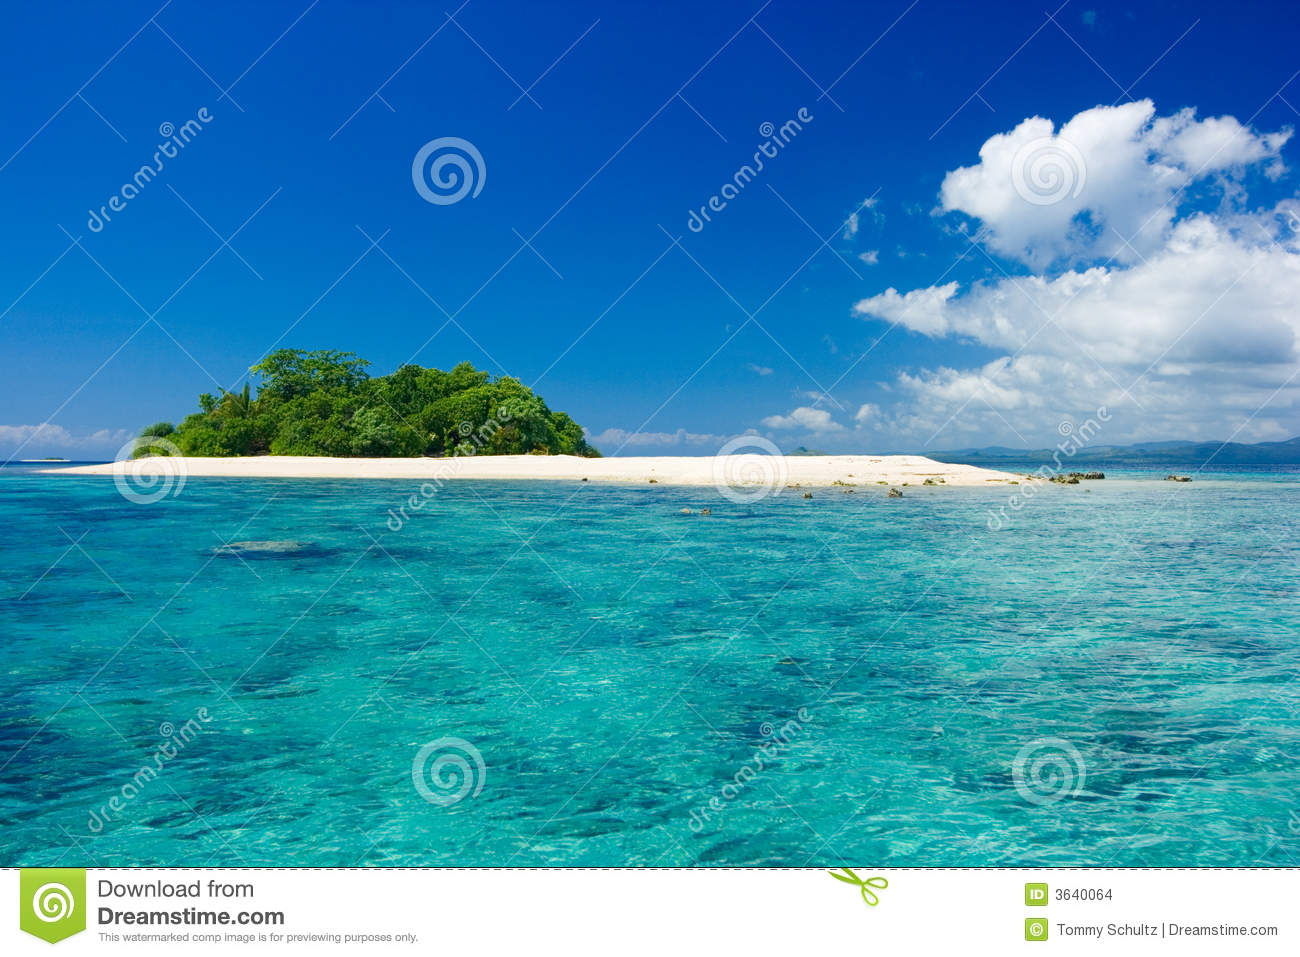 Tropical Island Vacation Paradise Stock Images - Image ...